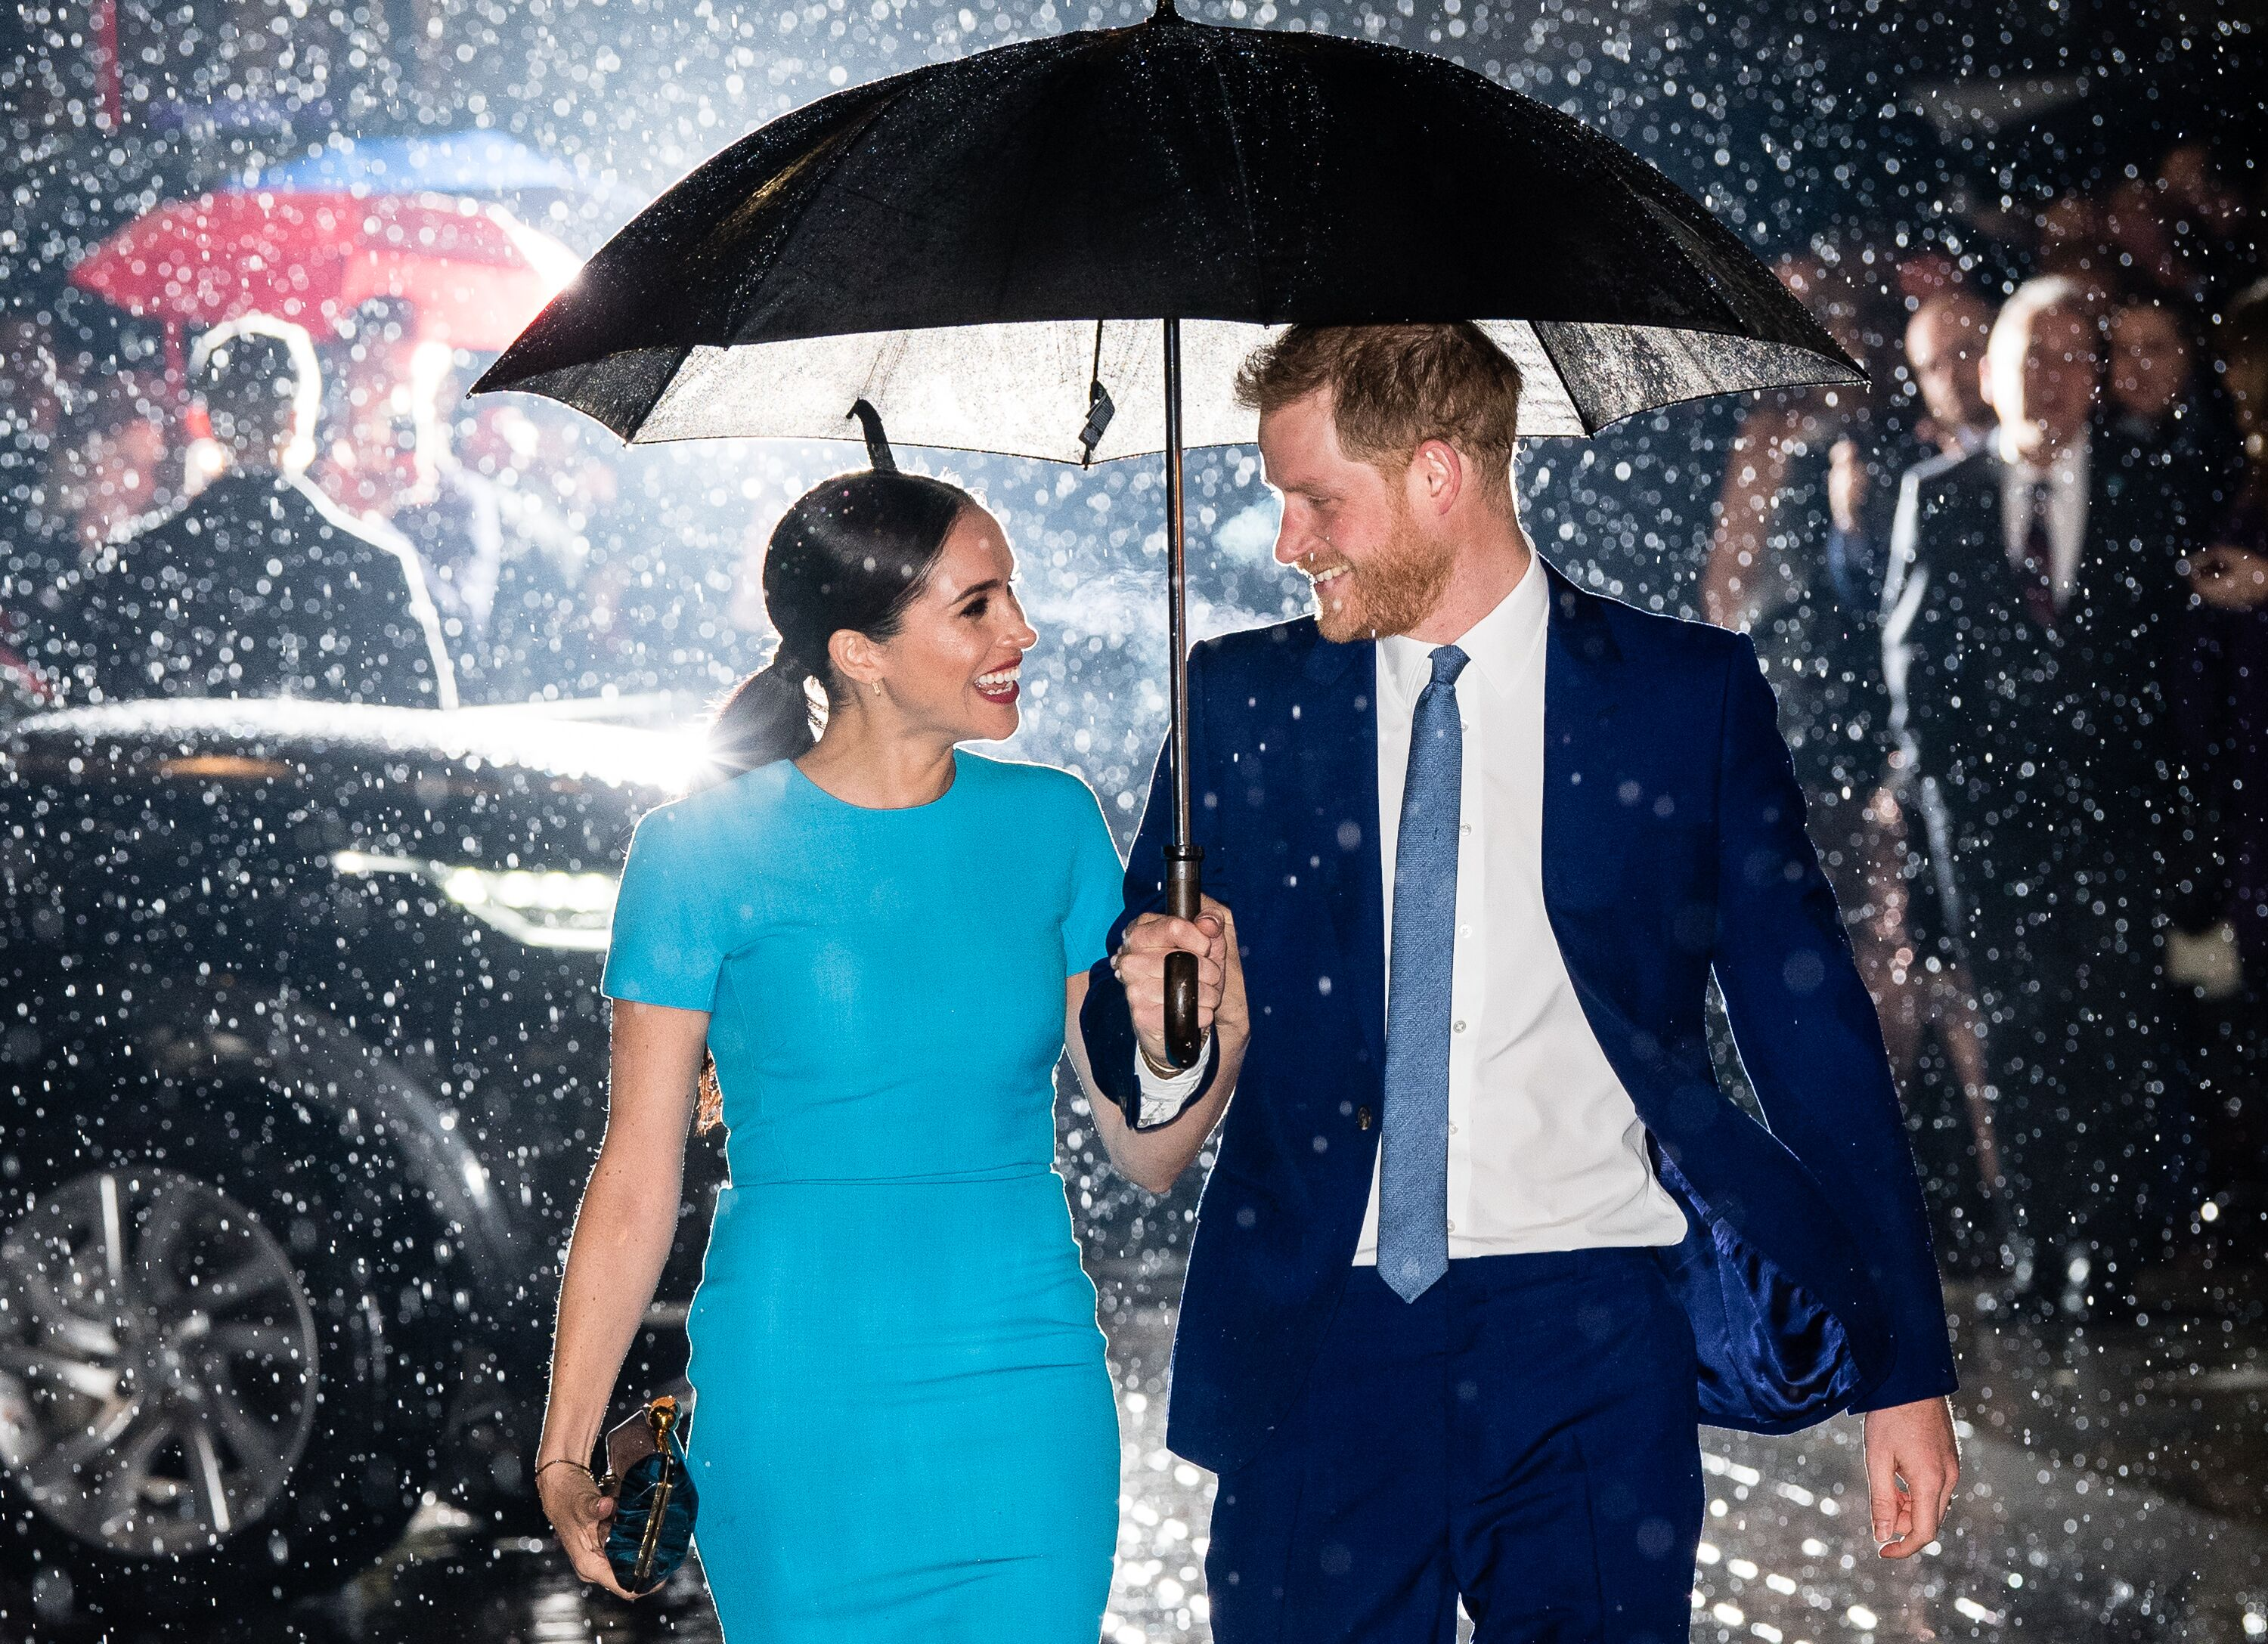 Prince Harry, Duke of Sussex and Meghan, Duchess of Sussex attend The Endeavour Fund Awards at Mansion House on March 05, 2020 in London, England. | Source: Getty Images